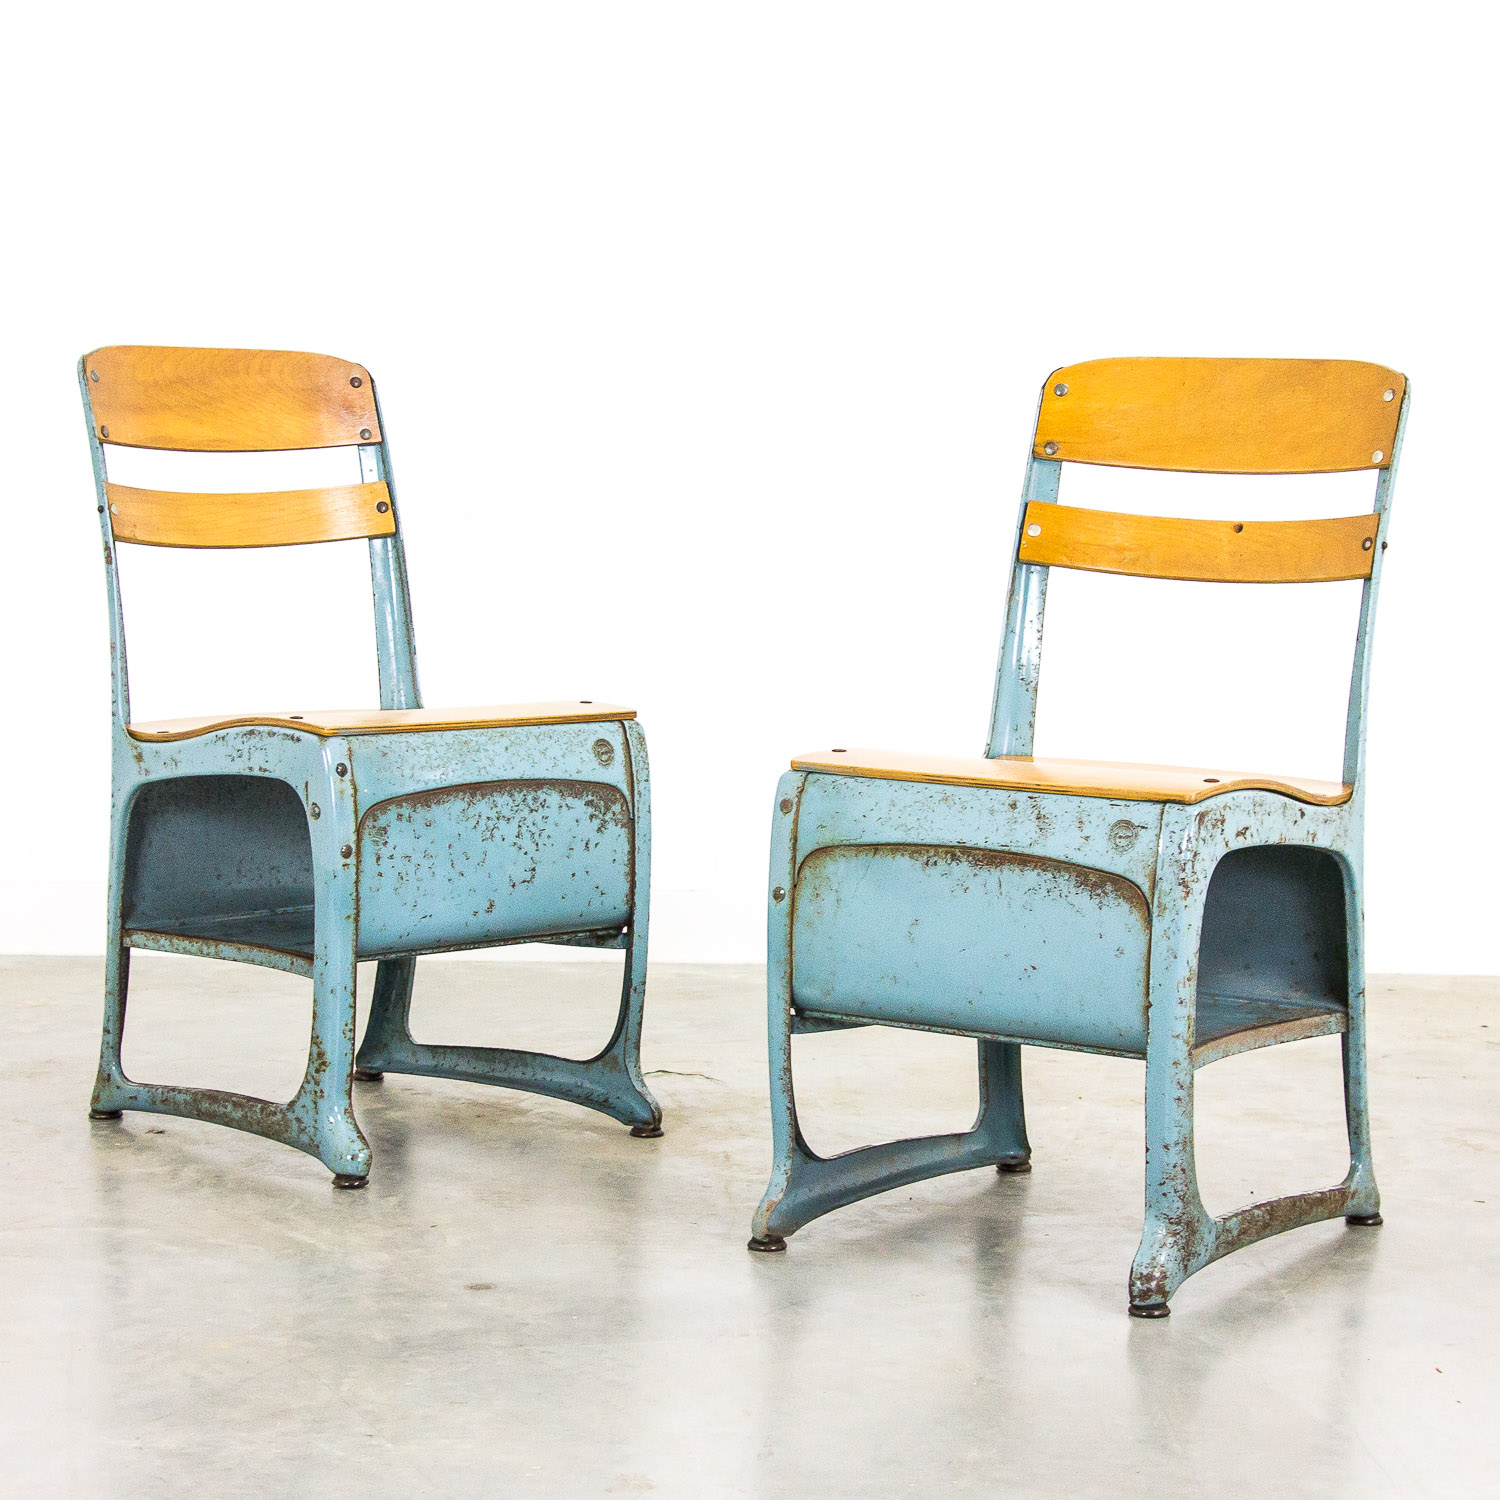 Set of 2 American industrial schoolchairs by Envoy